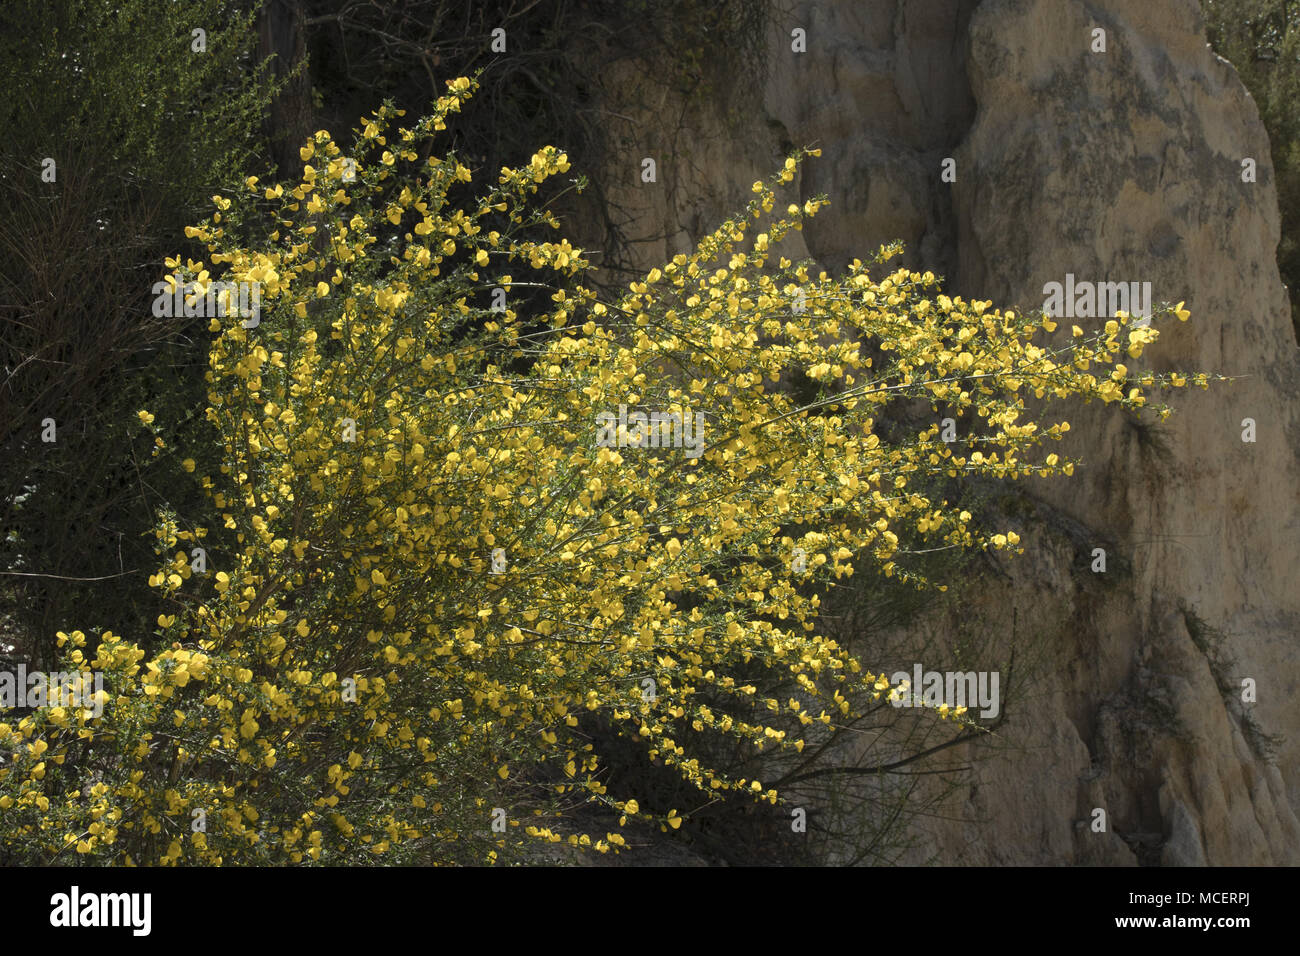 Genista monspessulana, French broom, Les Orgues, Ille-sur-Têt, Languedoc-Rpussillon, France - Stock Image